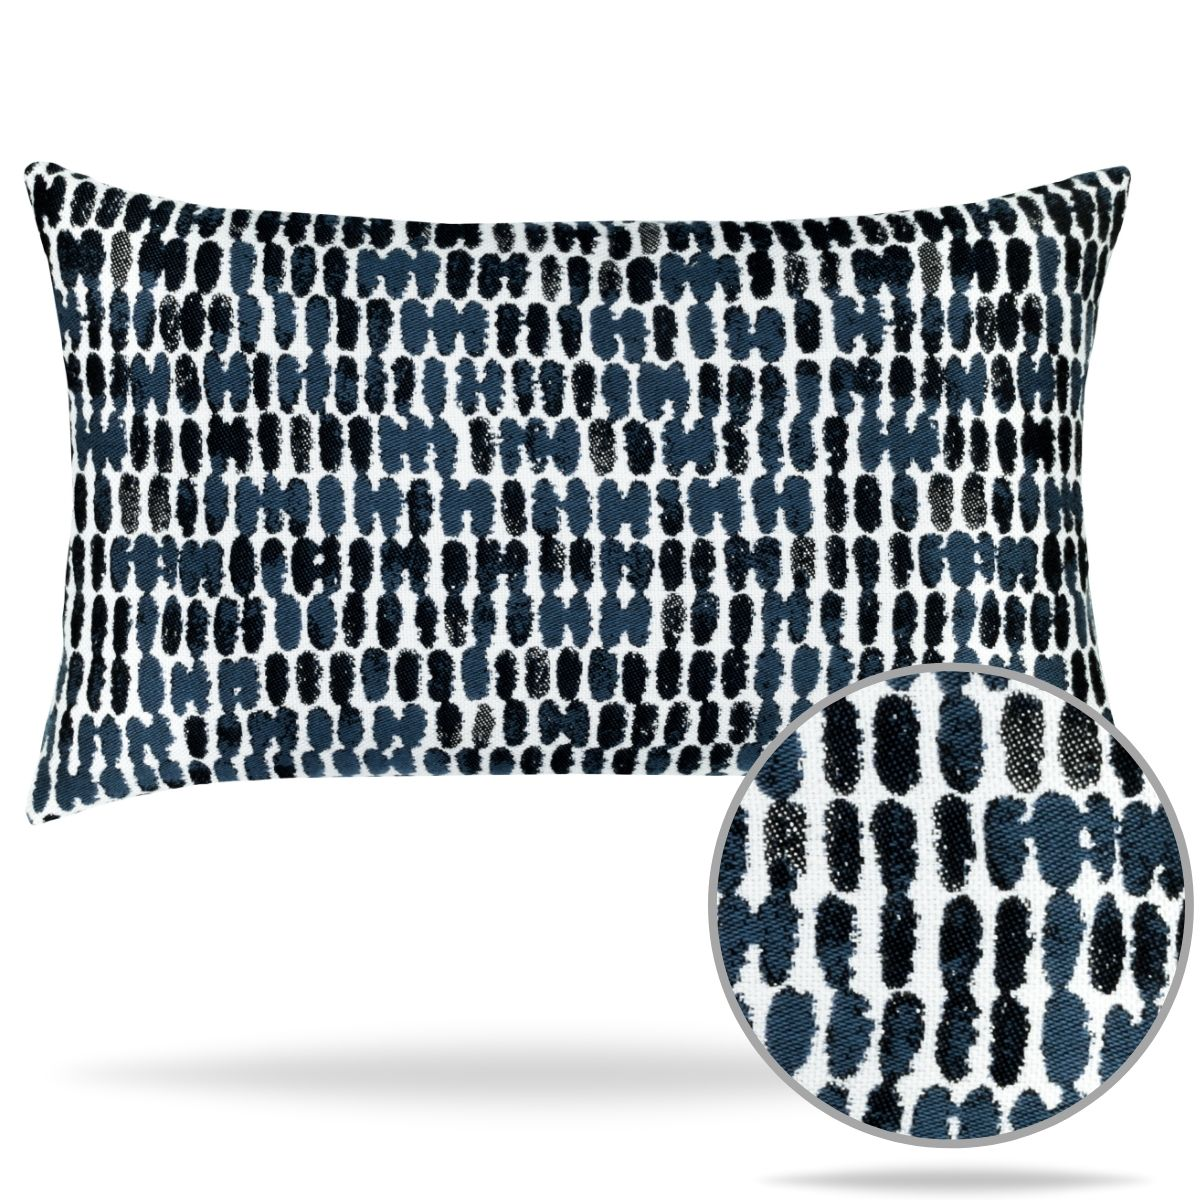 thumbprint-indigo-lumbar-pillow